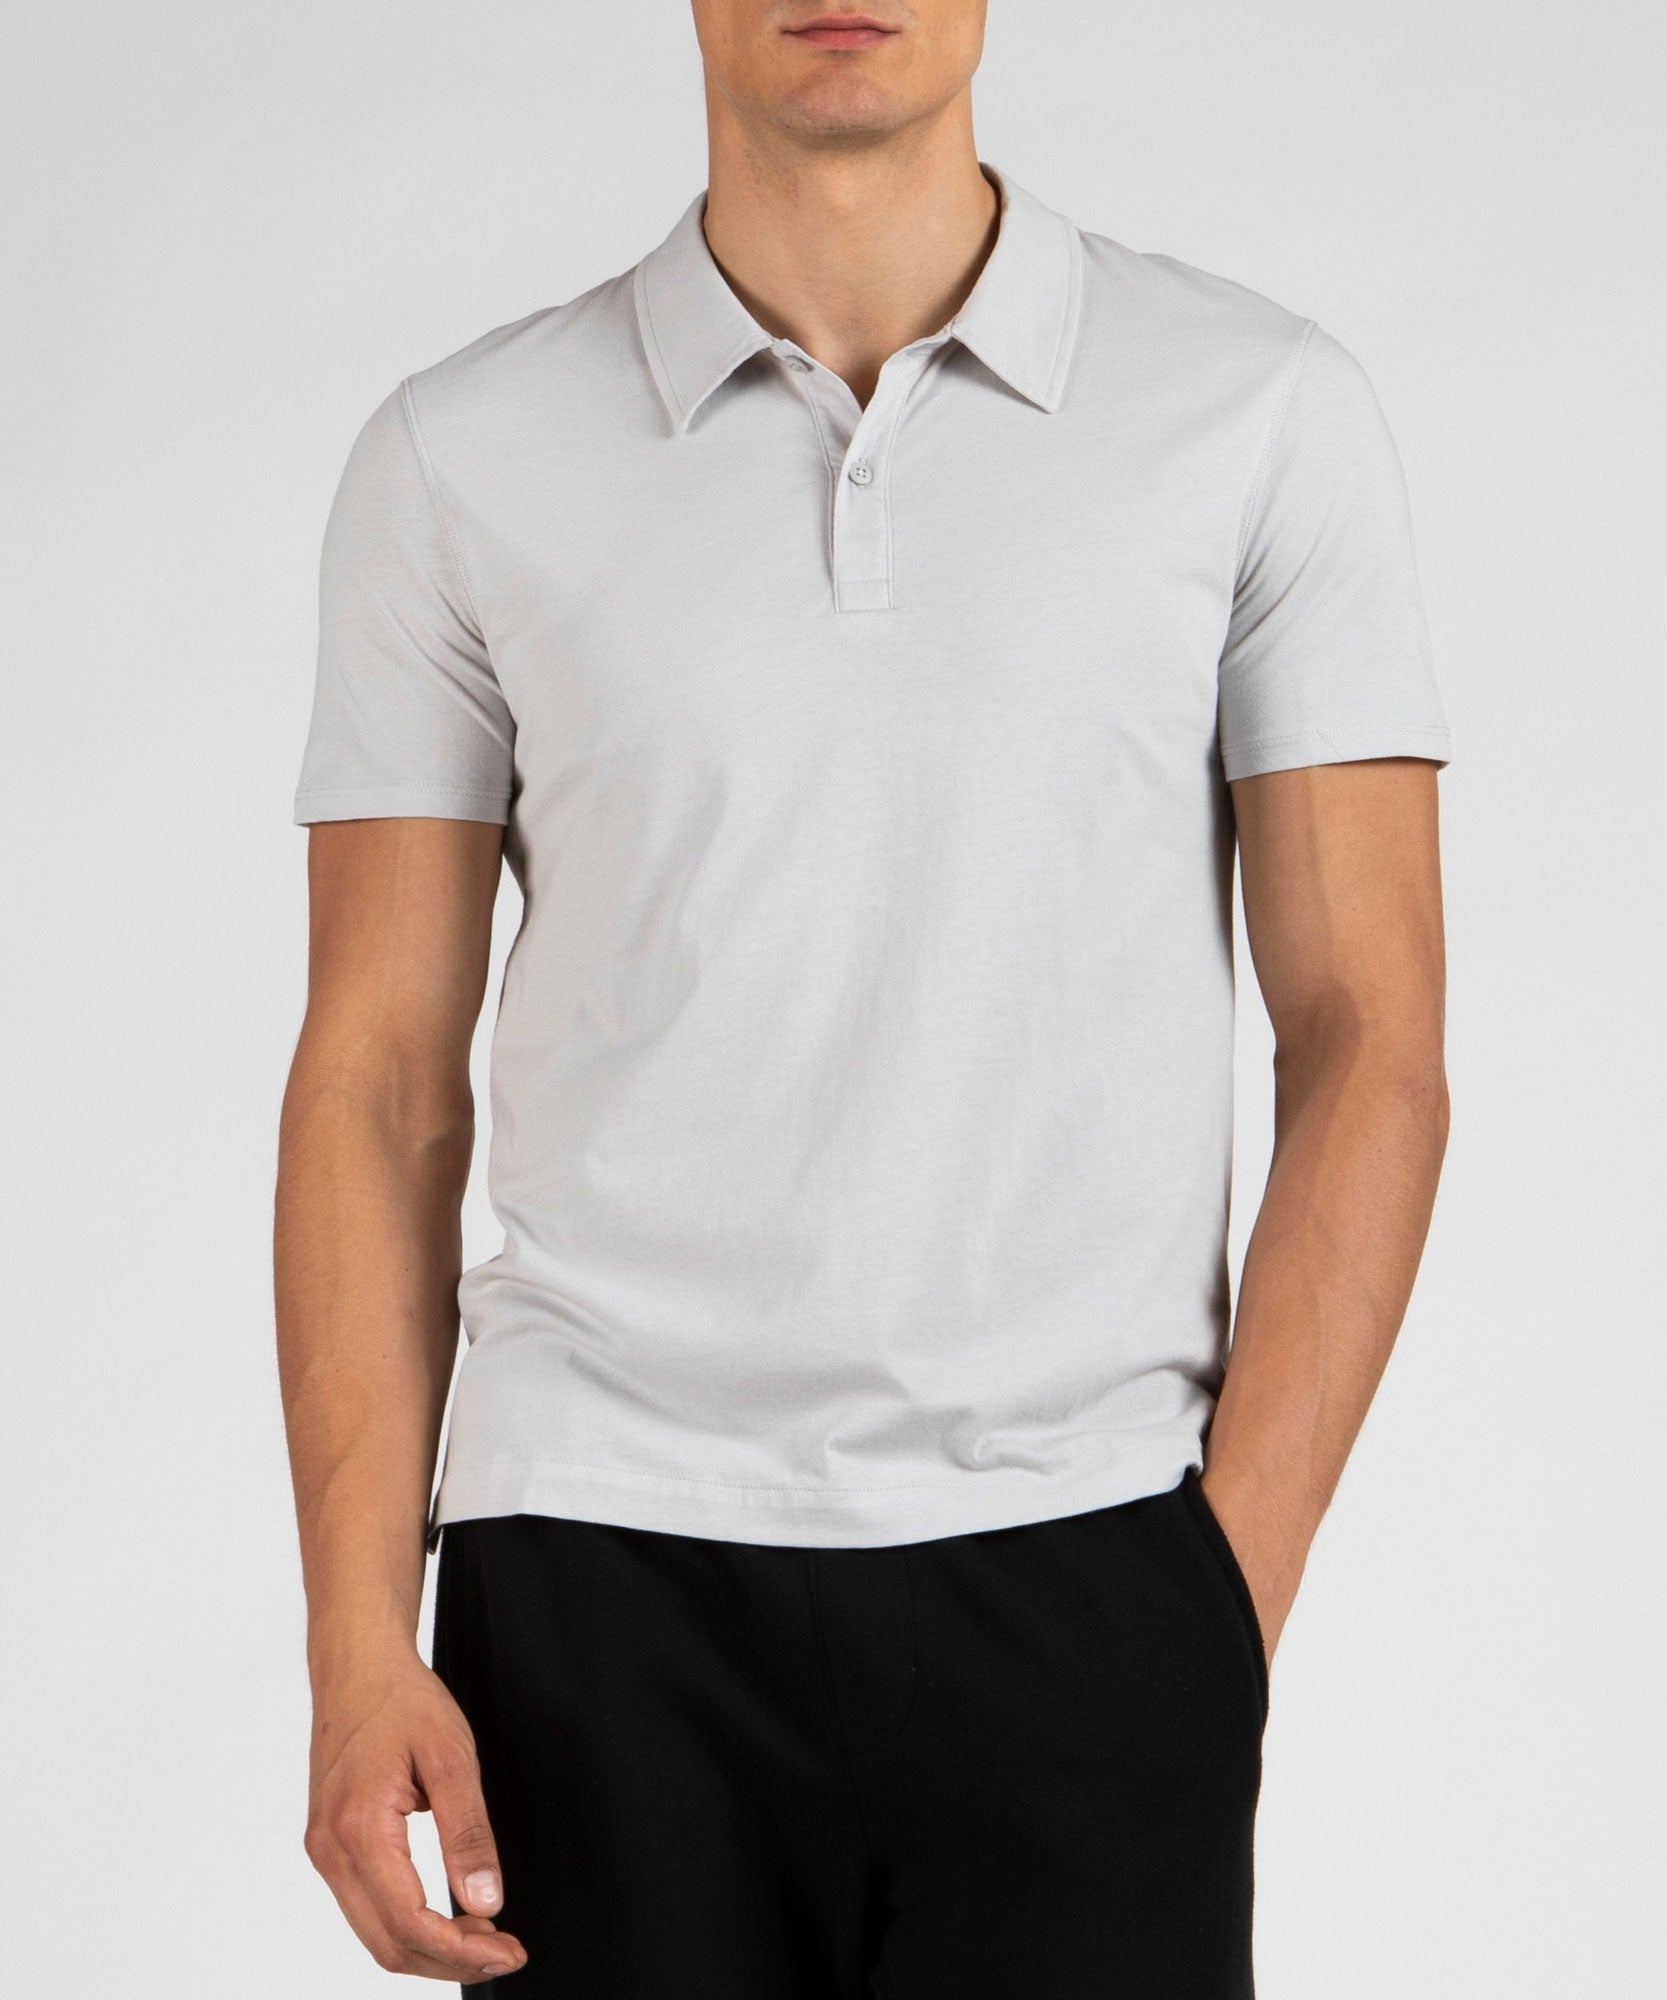 Grey Classic Jersey Short Sleeve Polo - Men's Polo Shirt by ATM Anthony Thomas Melillo